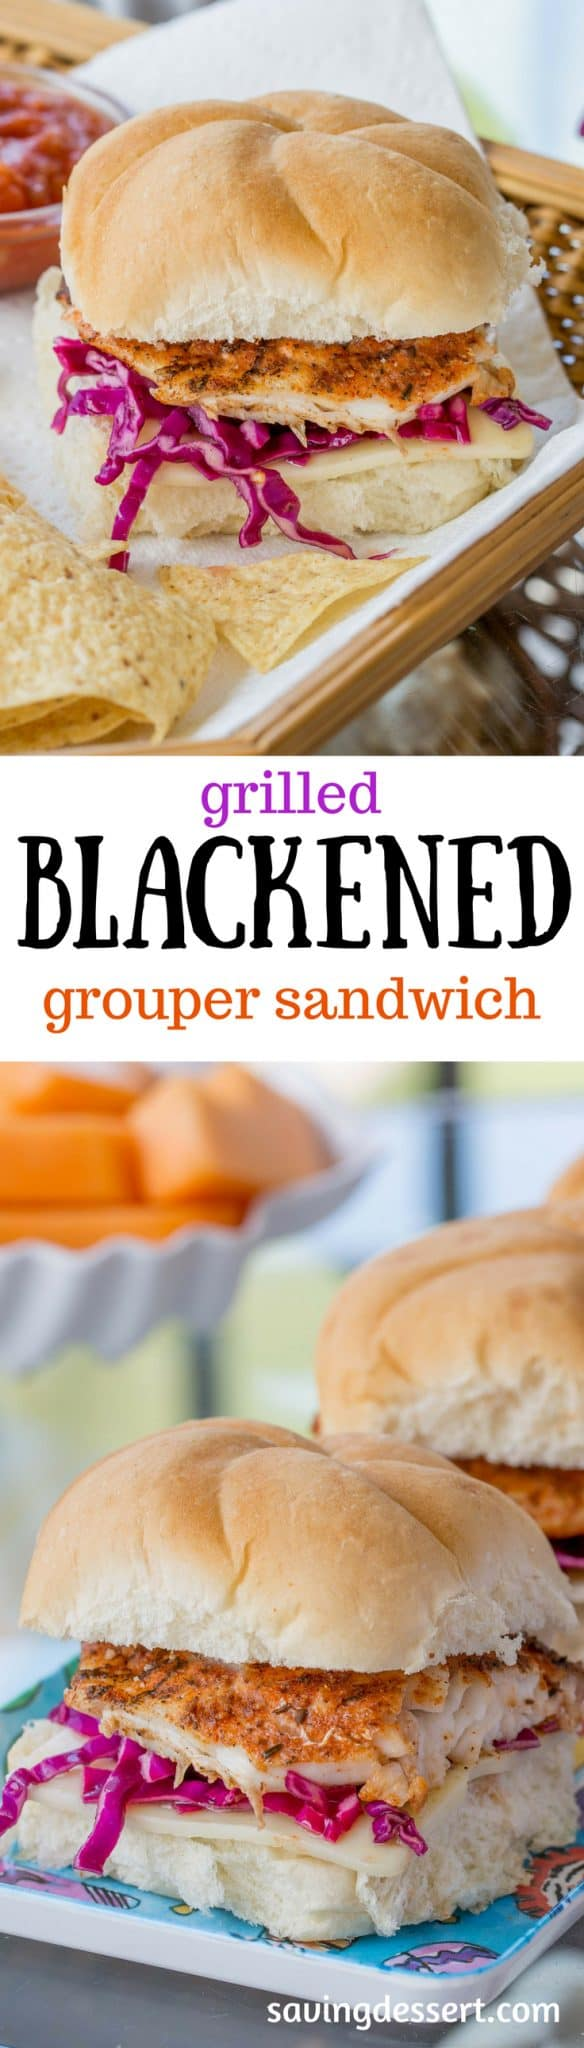 Grilled Blackened Grouper Sandwich ~ Fresh Grouper seasoned with your favorite blackened spices then grilled and served on a soft bun with a simple purple slaw and a slice of swiss cheese. An easy lunch or light dinner, ready in minutes! www.savingdessert.com